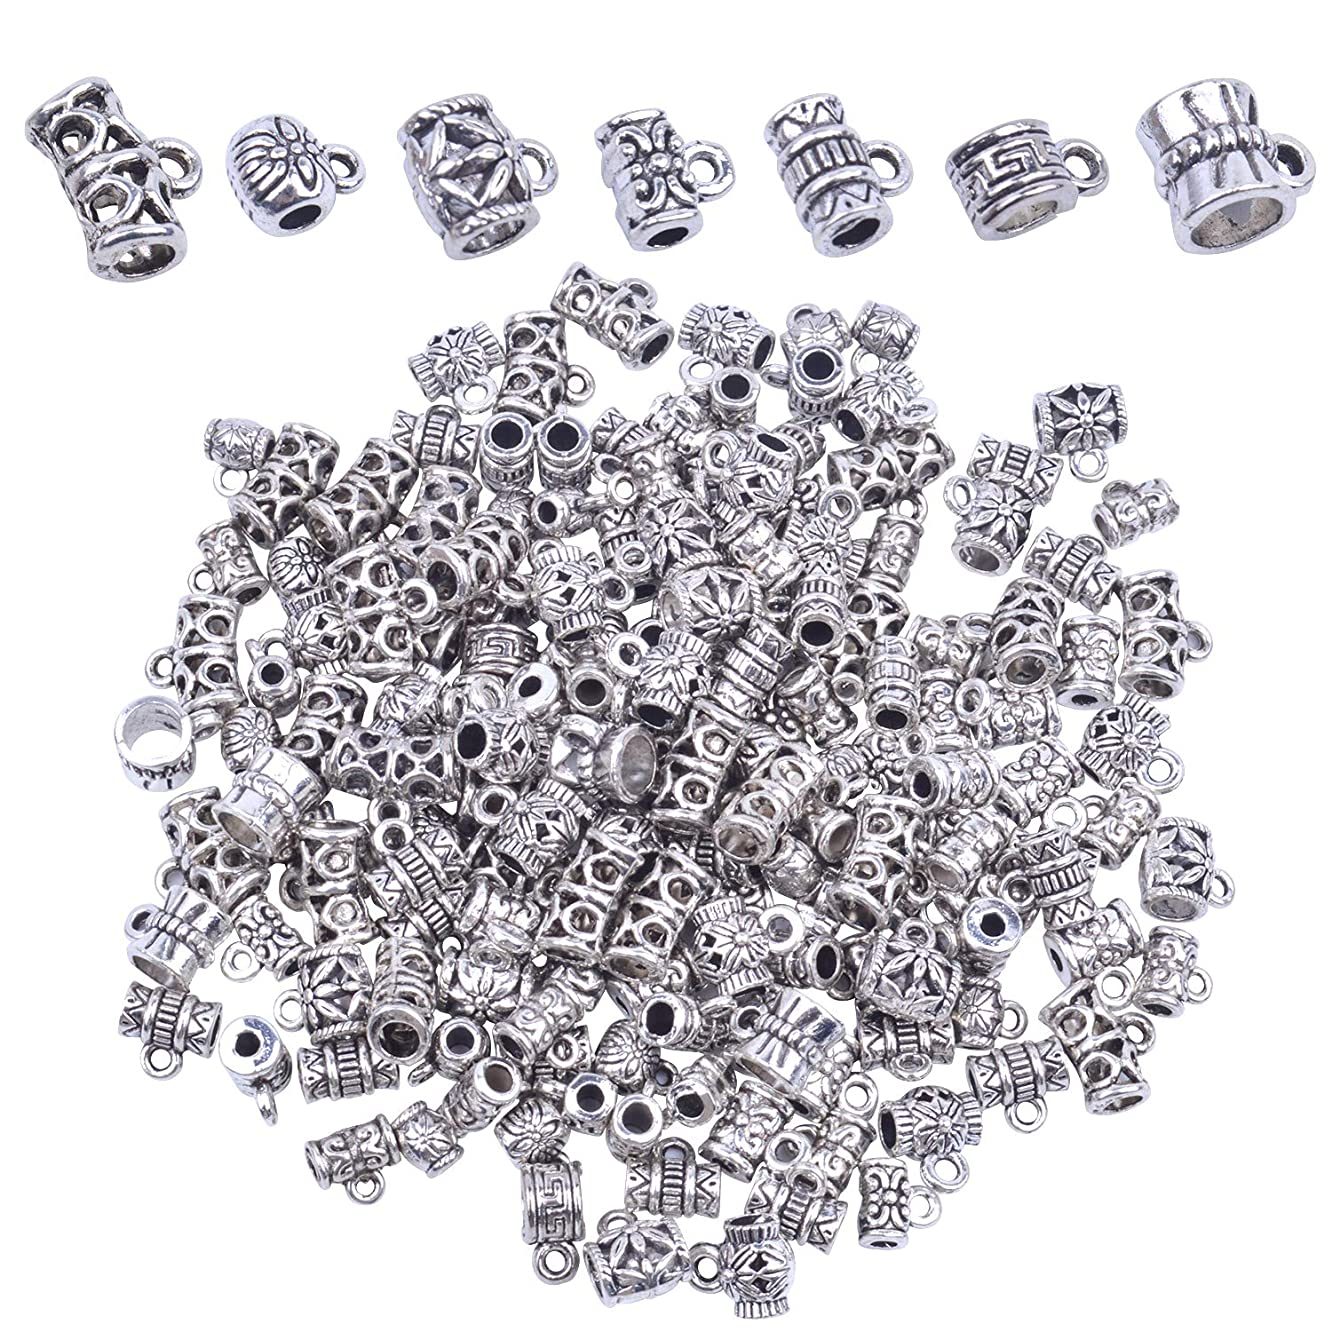 BronaGrand 100g (About 160-170pcs) Mixed Antique Tibetan Silver Bail Beads,Spacer Bead,Bail Tube Beads,Bracelet Charms,Necklace Pendants for Jewelry and Craft Making(Small Size)